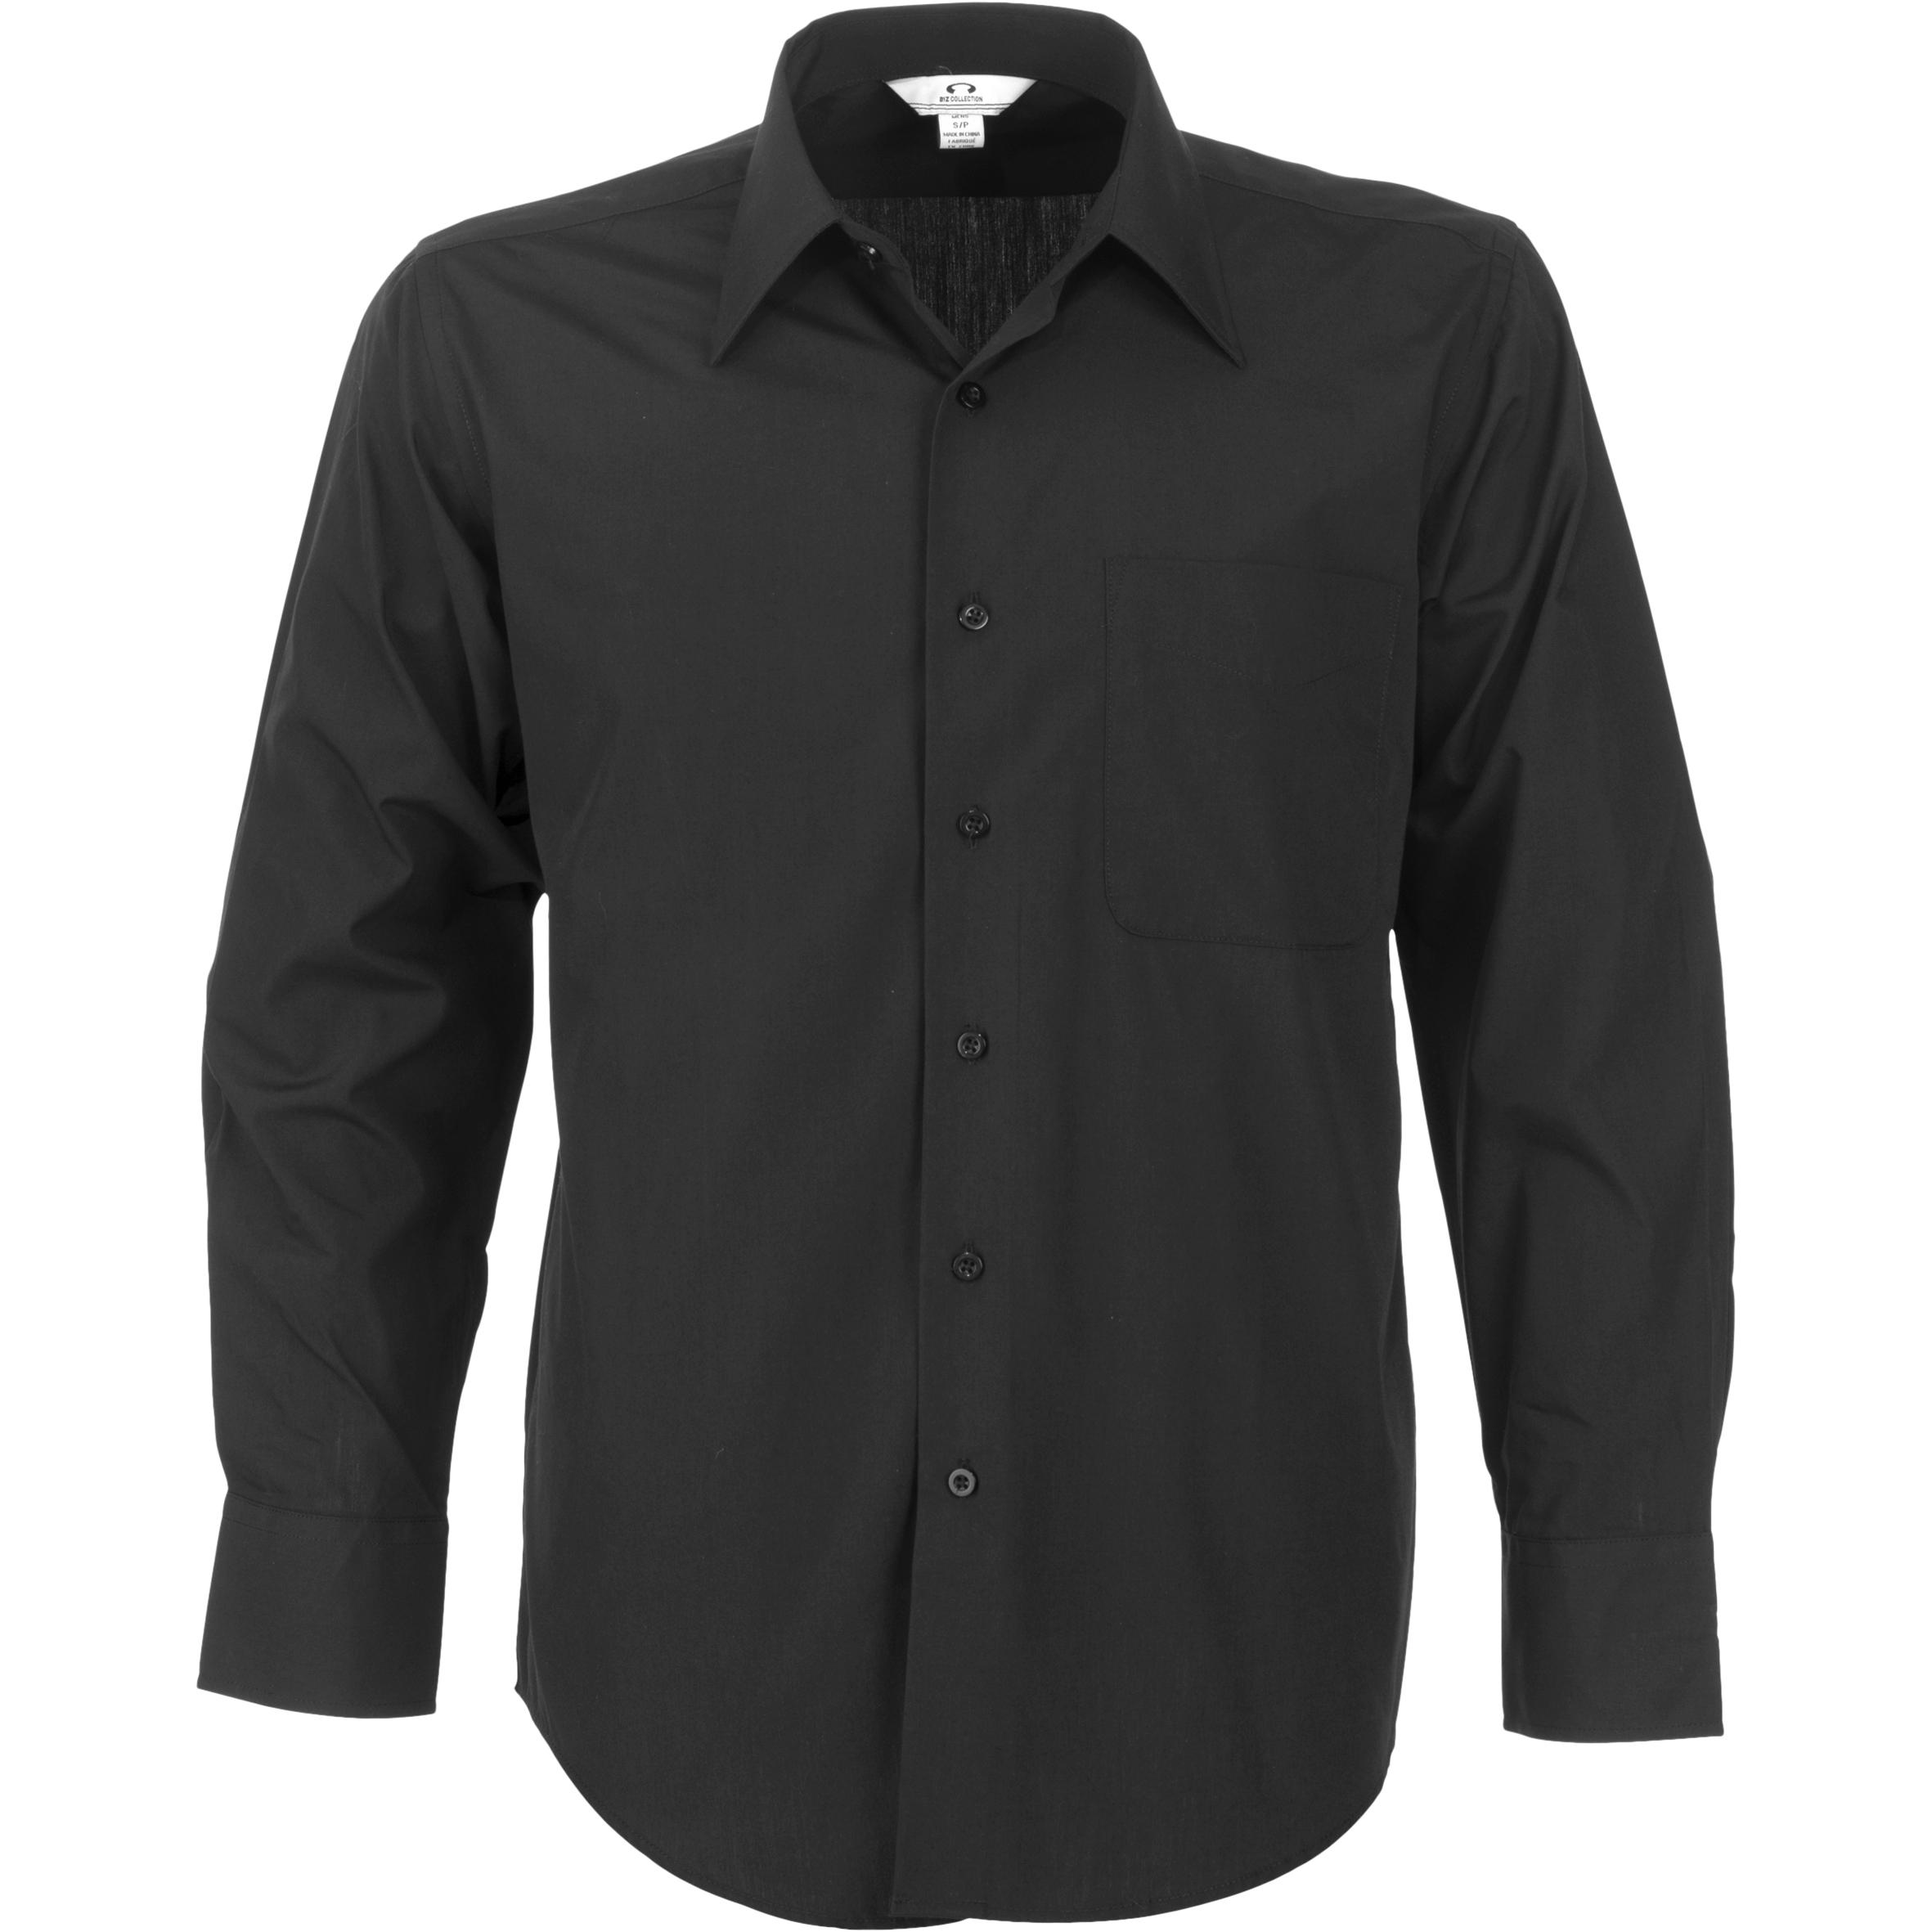 Mens Long Sleeve Metro Shirt - Black Only